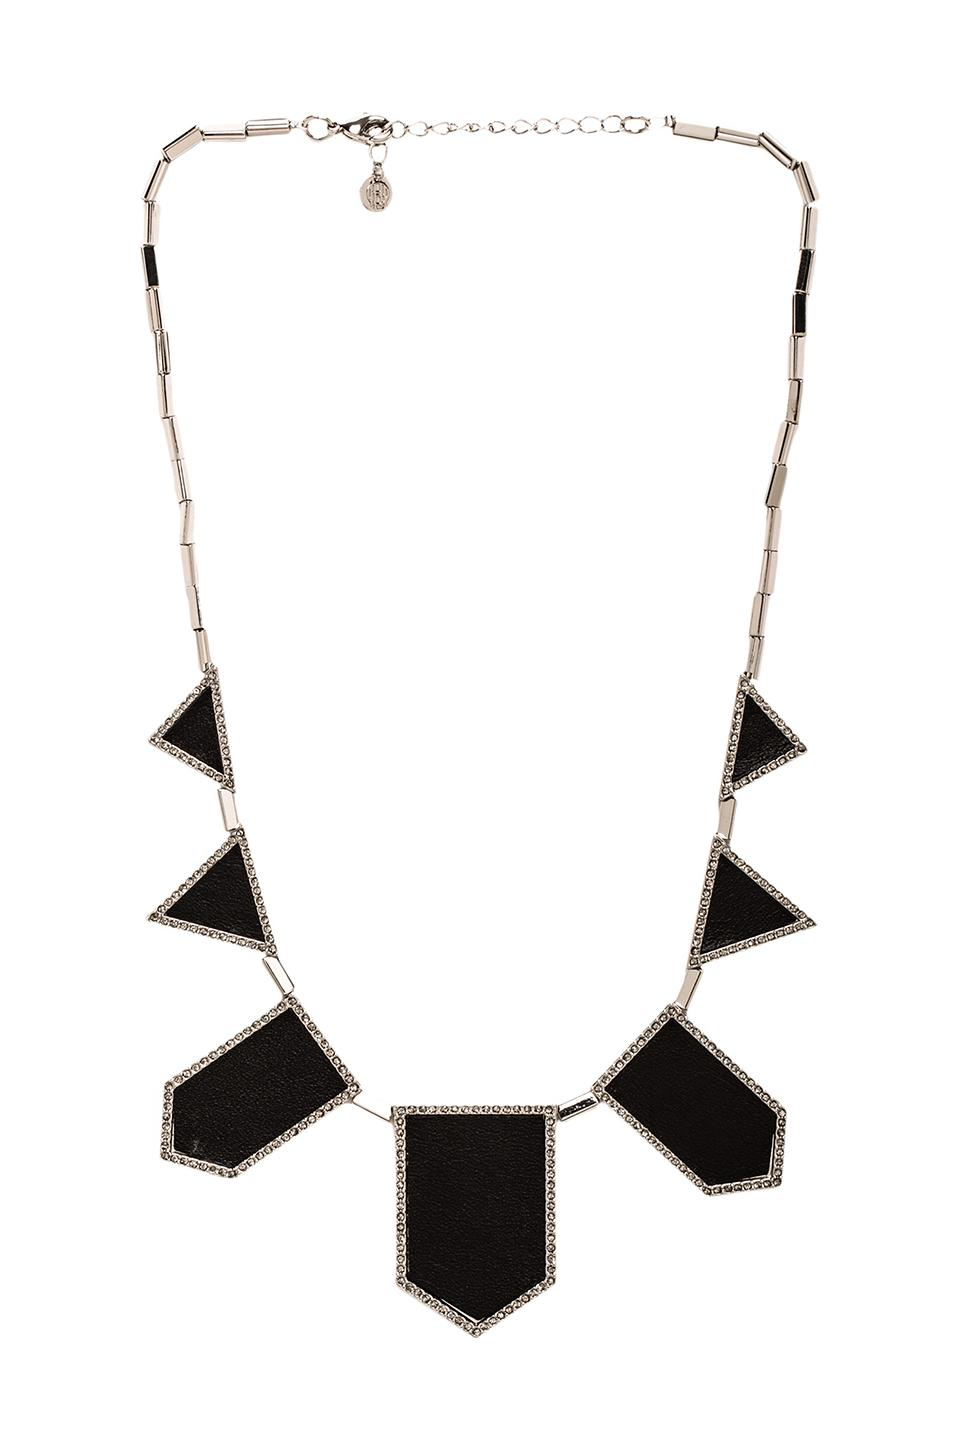 House of Harlow 1960 House of Harlow Pave Five Station Necklace in Gunmetal Tone Black